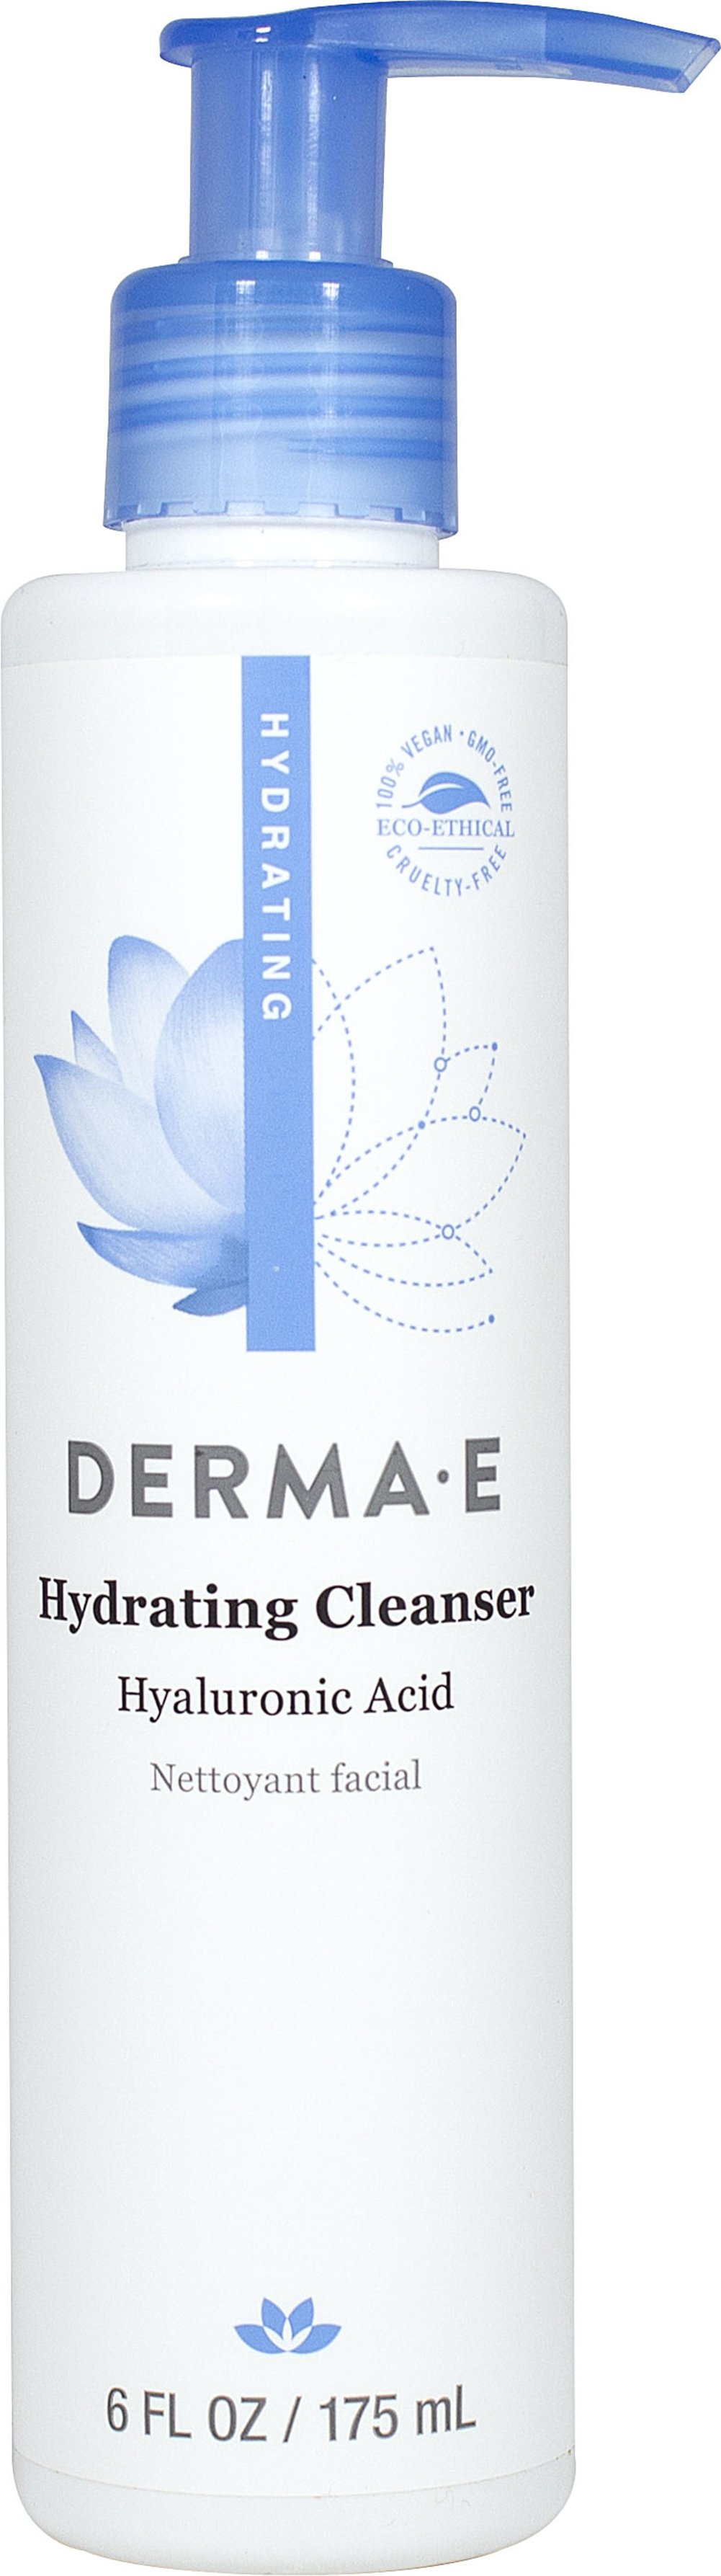 Derma E® Hydrating Cleanser with Hyaluronic Acid  6 oz Face Wash  $12.40